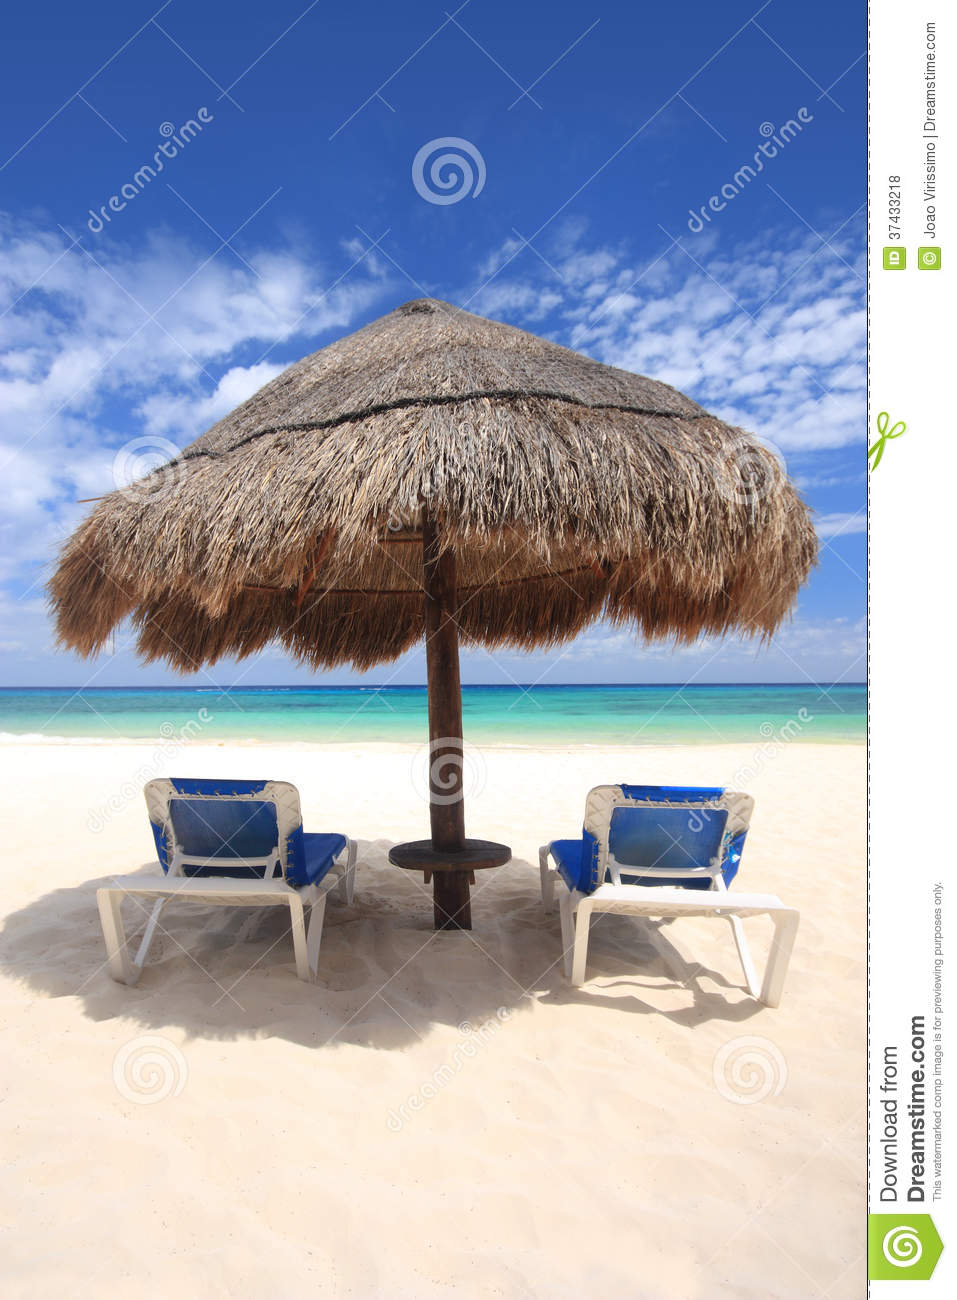 Beach Chairs Under Palapa Thatched Hut Royalty Free Stock